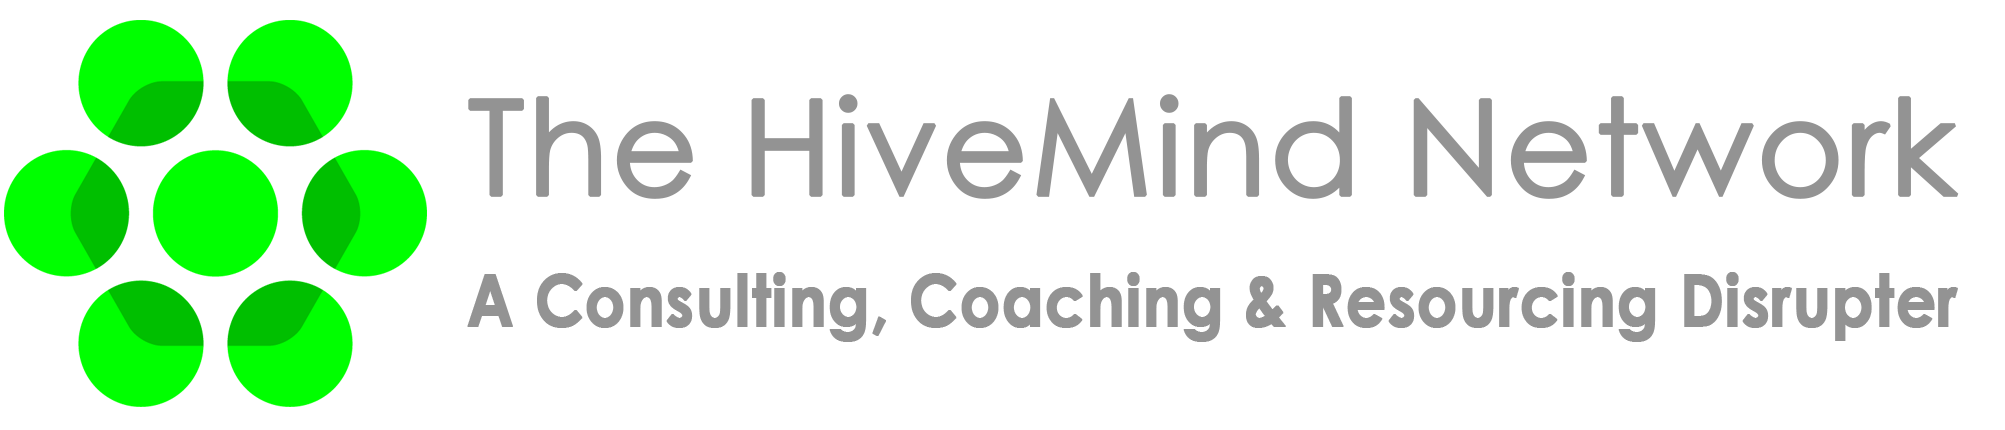 HiveMindNetwork.com